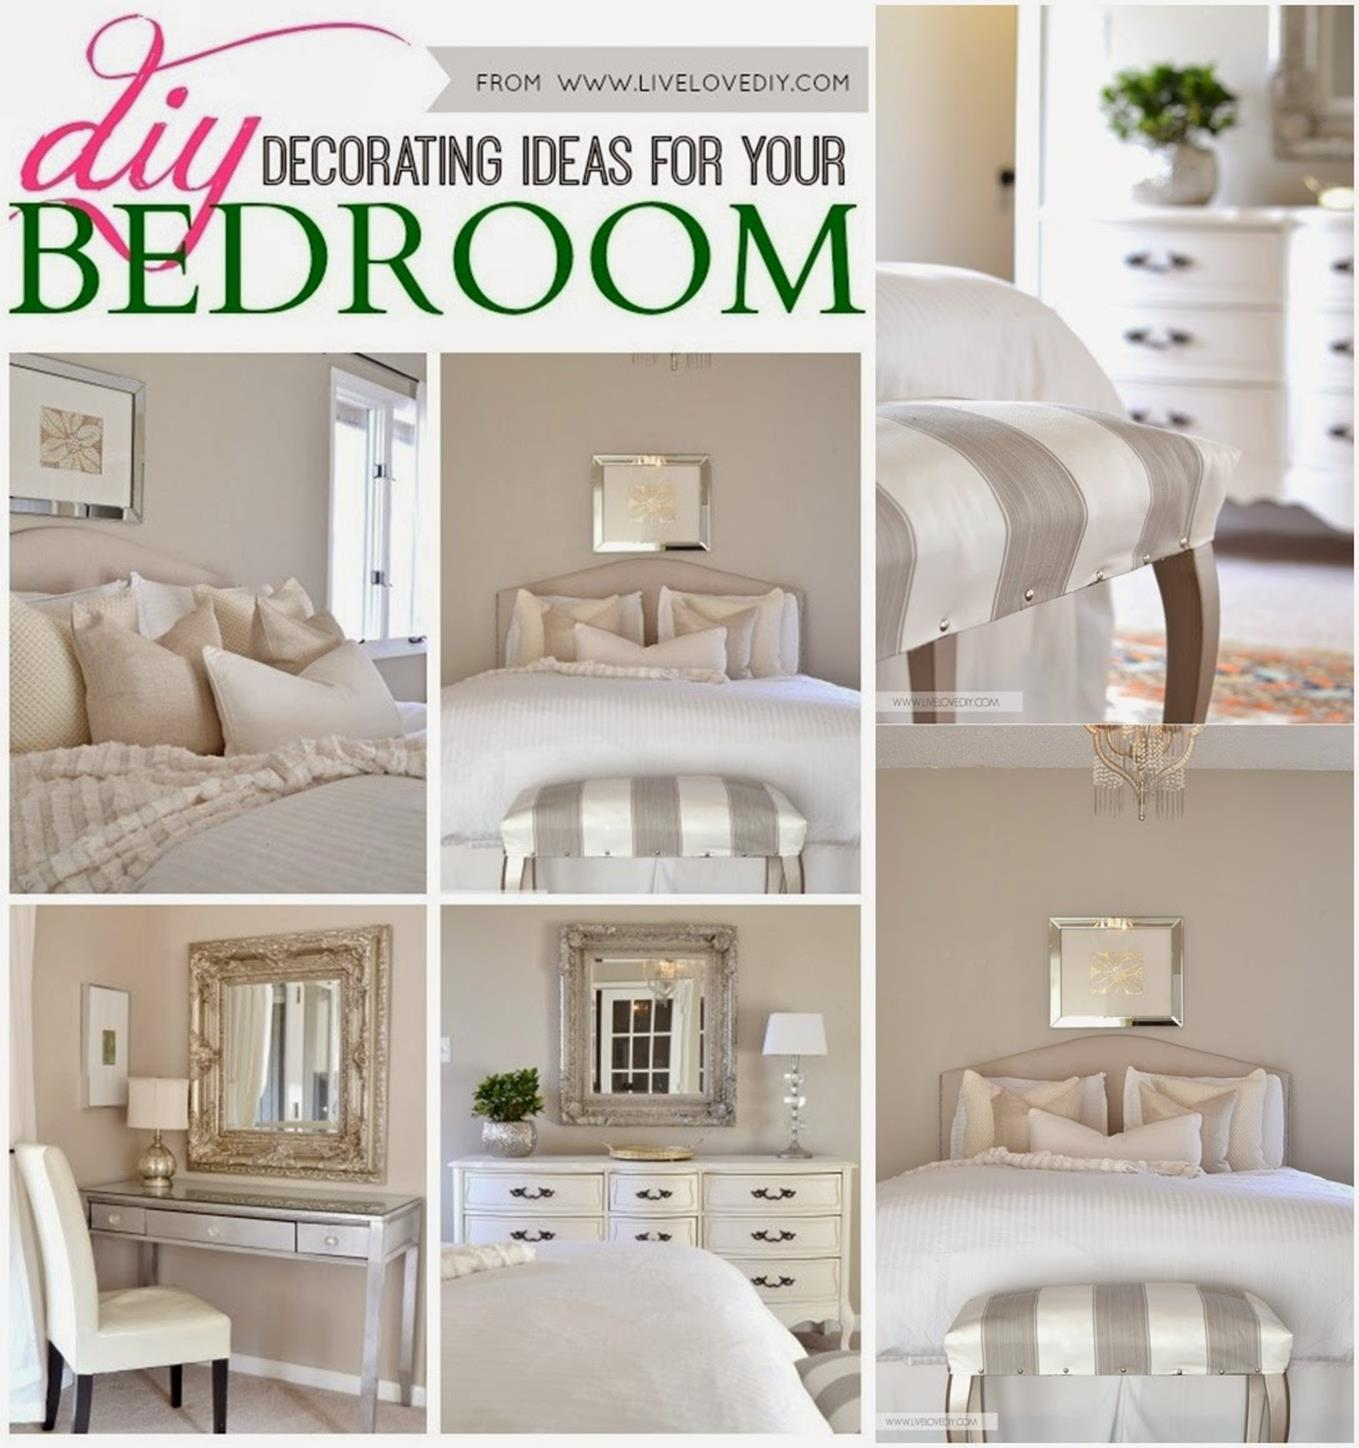 Perfect Bedroom Decorating Idea for Craft 20